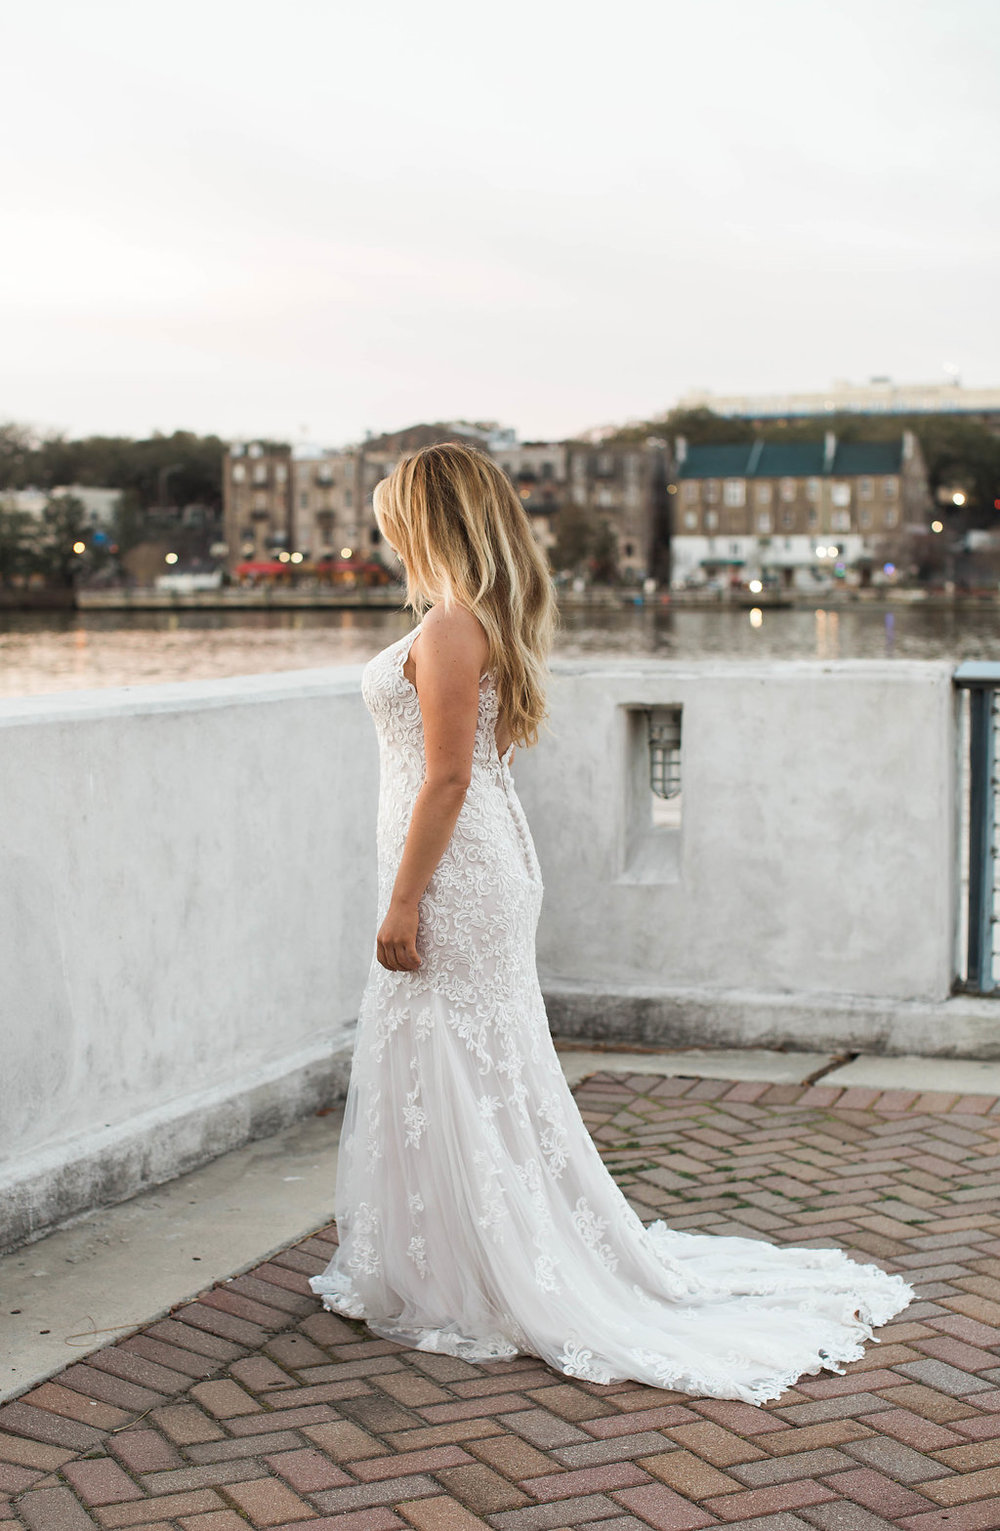 danielle-george-photography-tara-rebecca-ingram-maggie-sottero-ivory-and-beau-bridal-boutique-savannah-river-savannah-wedding-river-wedding-southern-wedding-southern-bride-adele-amelia-veil-1.JPG